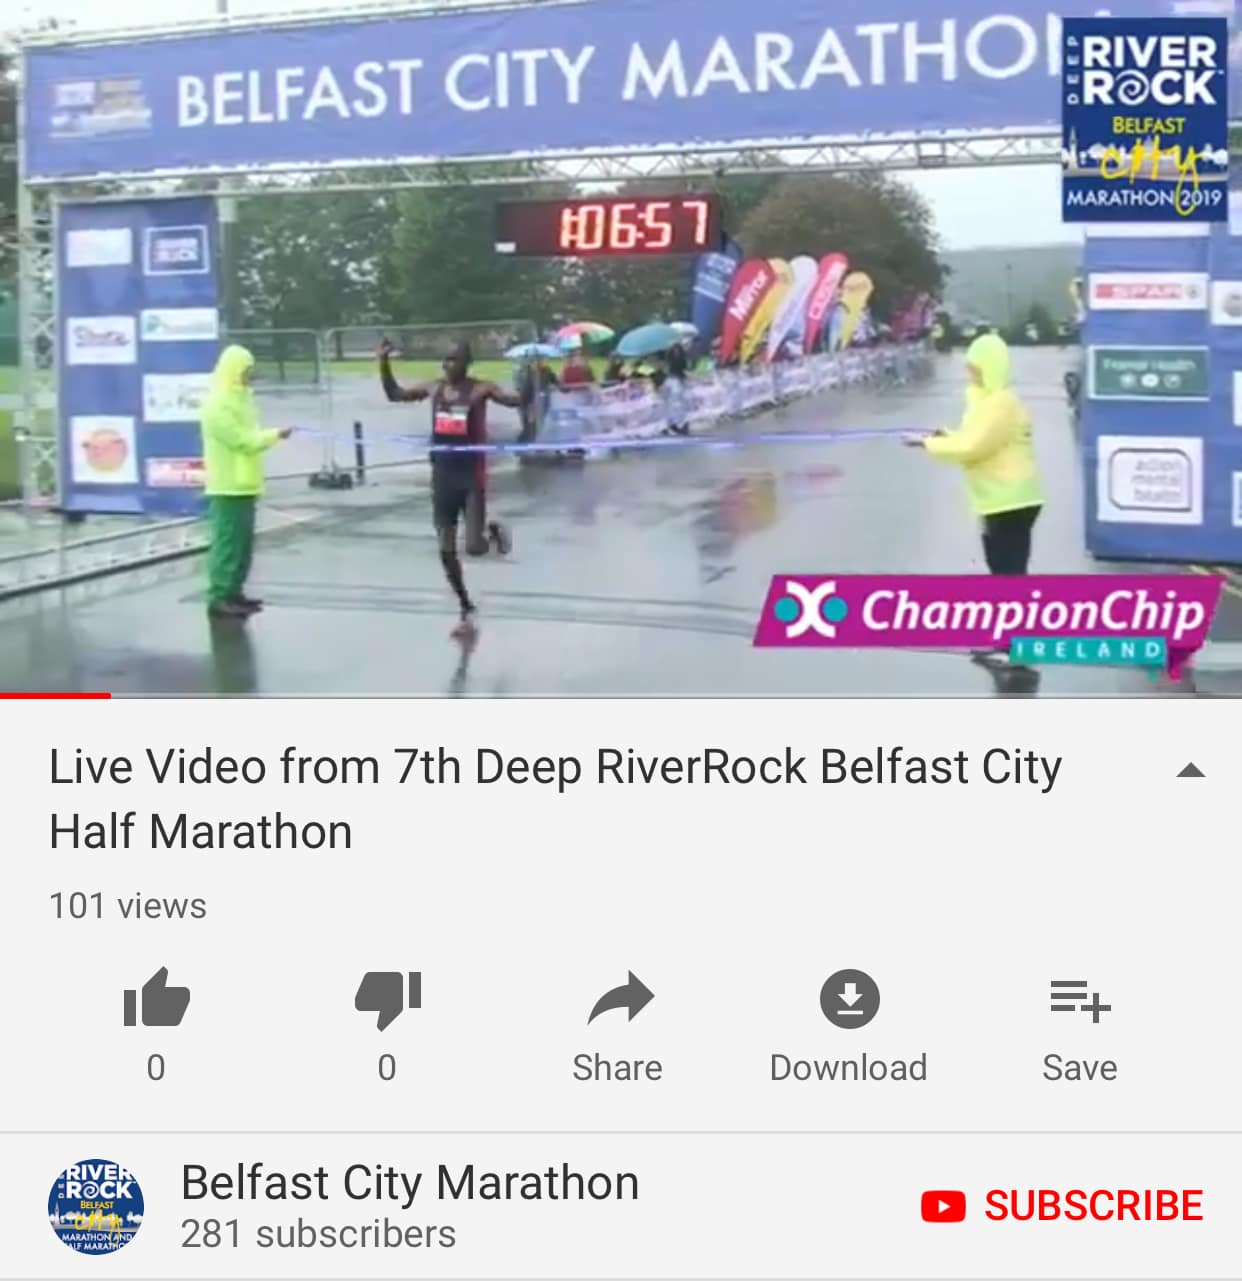 Facebook Live Finish Area Video available on YouTube